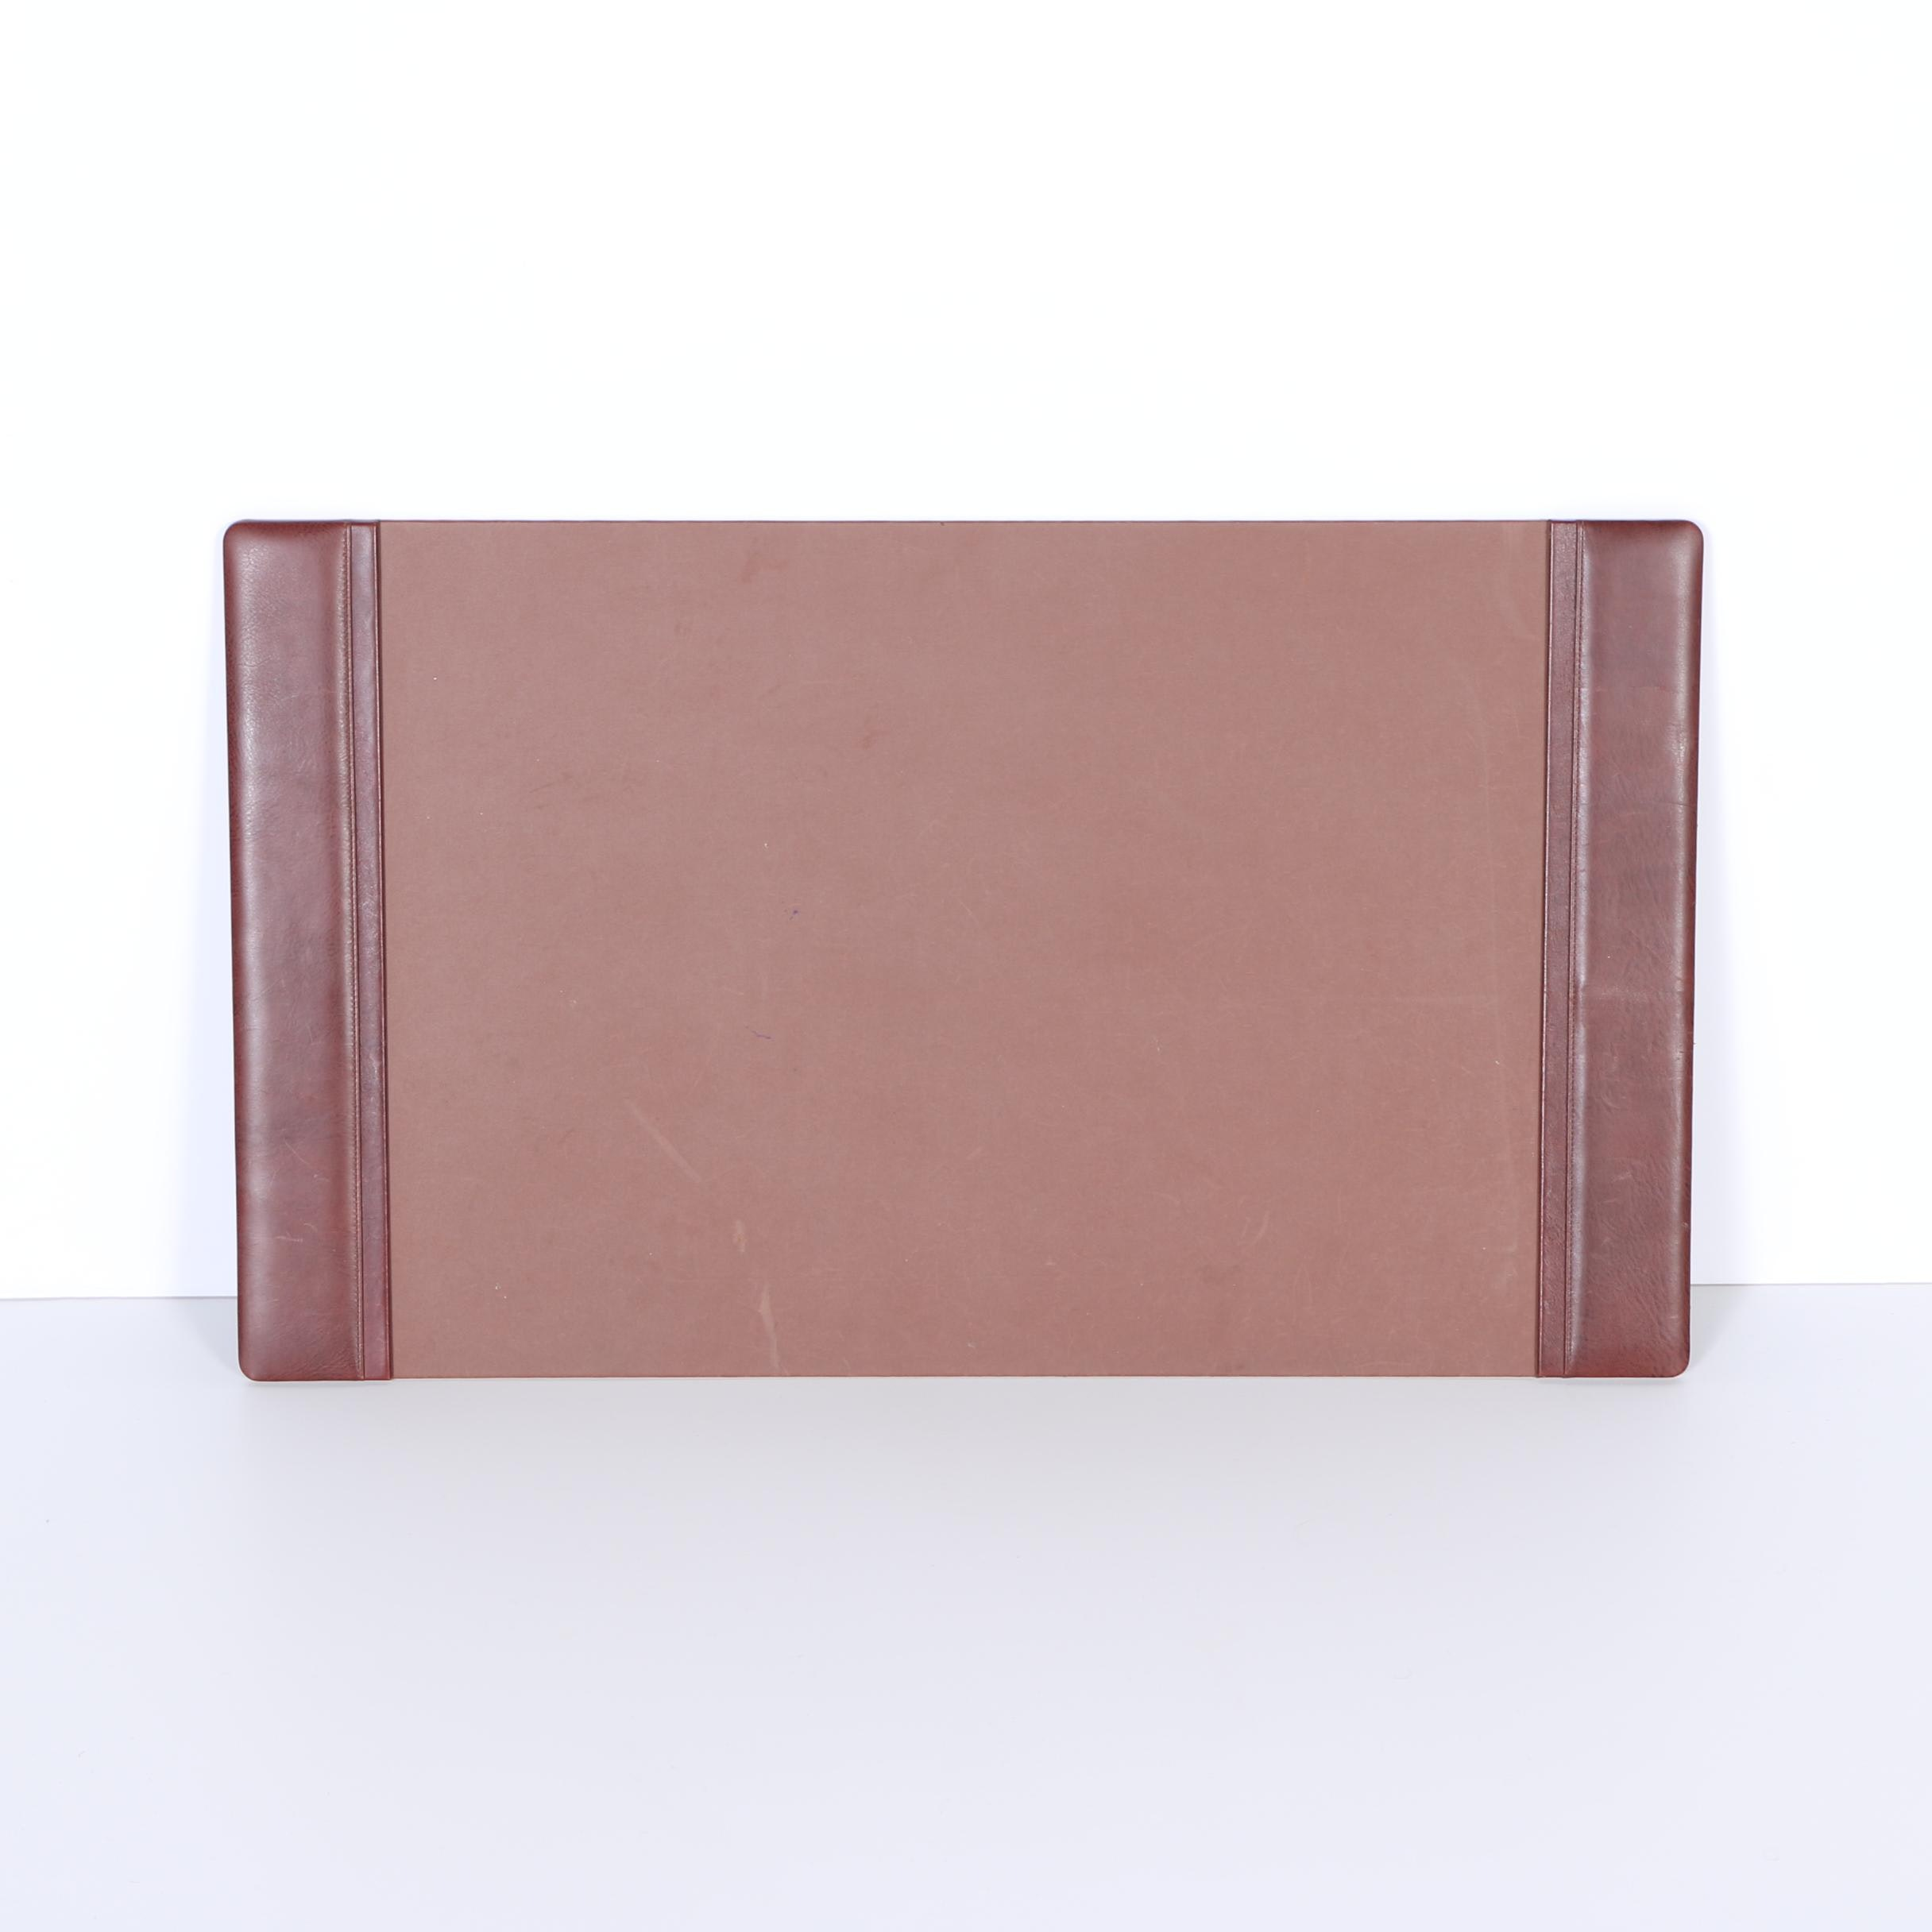 Brown Desk Pad with Leather Sides